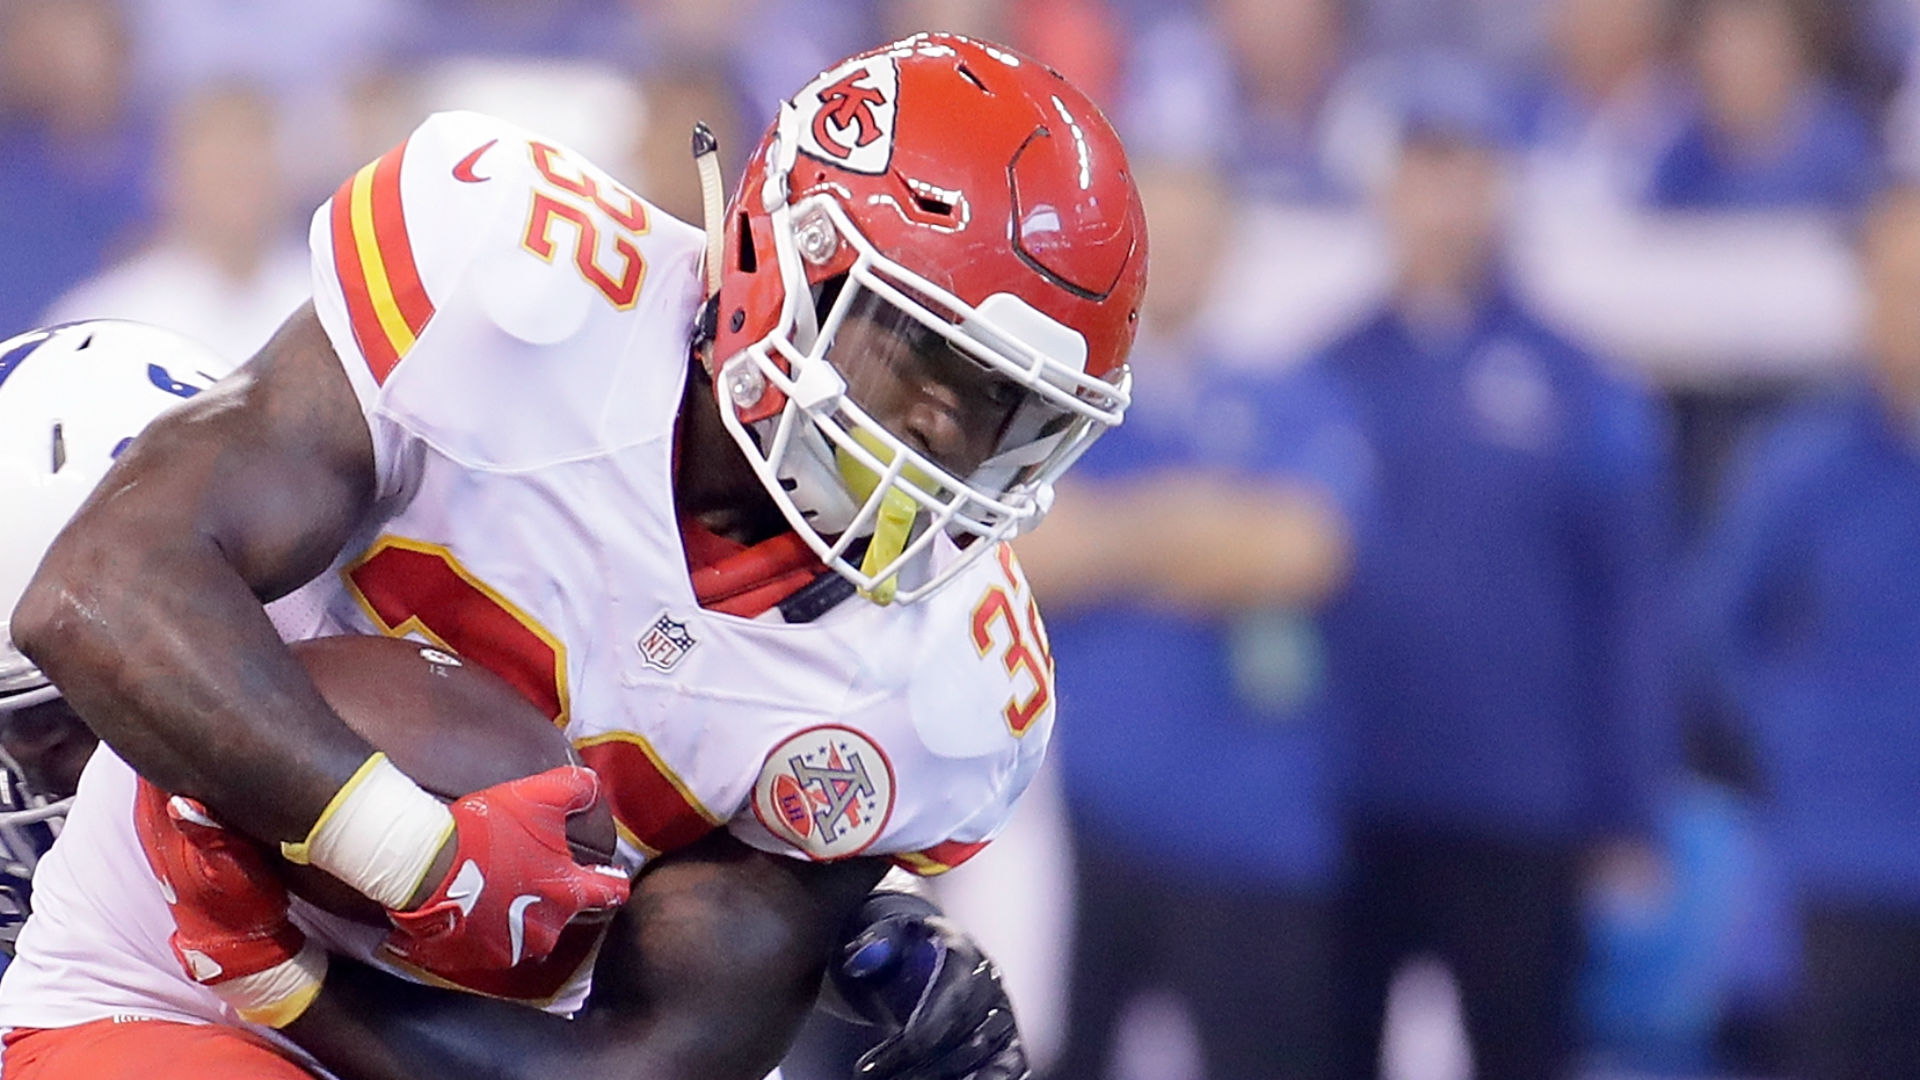 Chiefs' Spencer Ware likely needs season-ending surgery for torn PCL